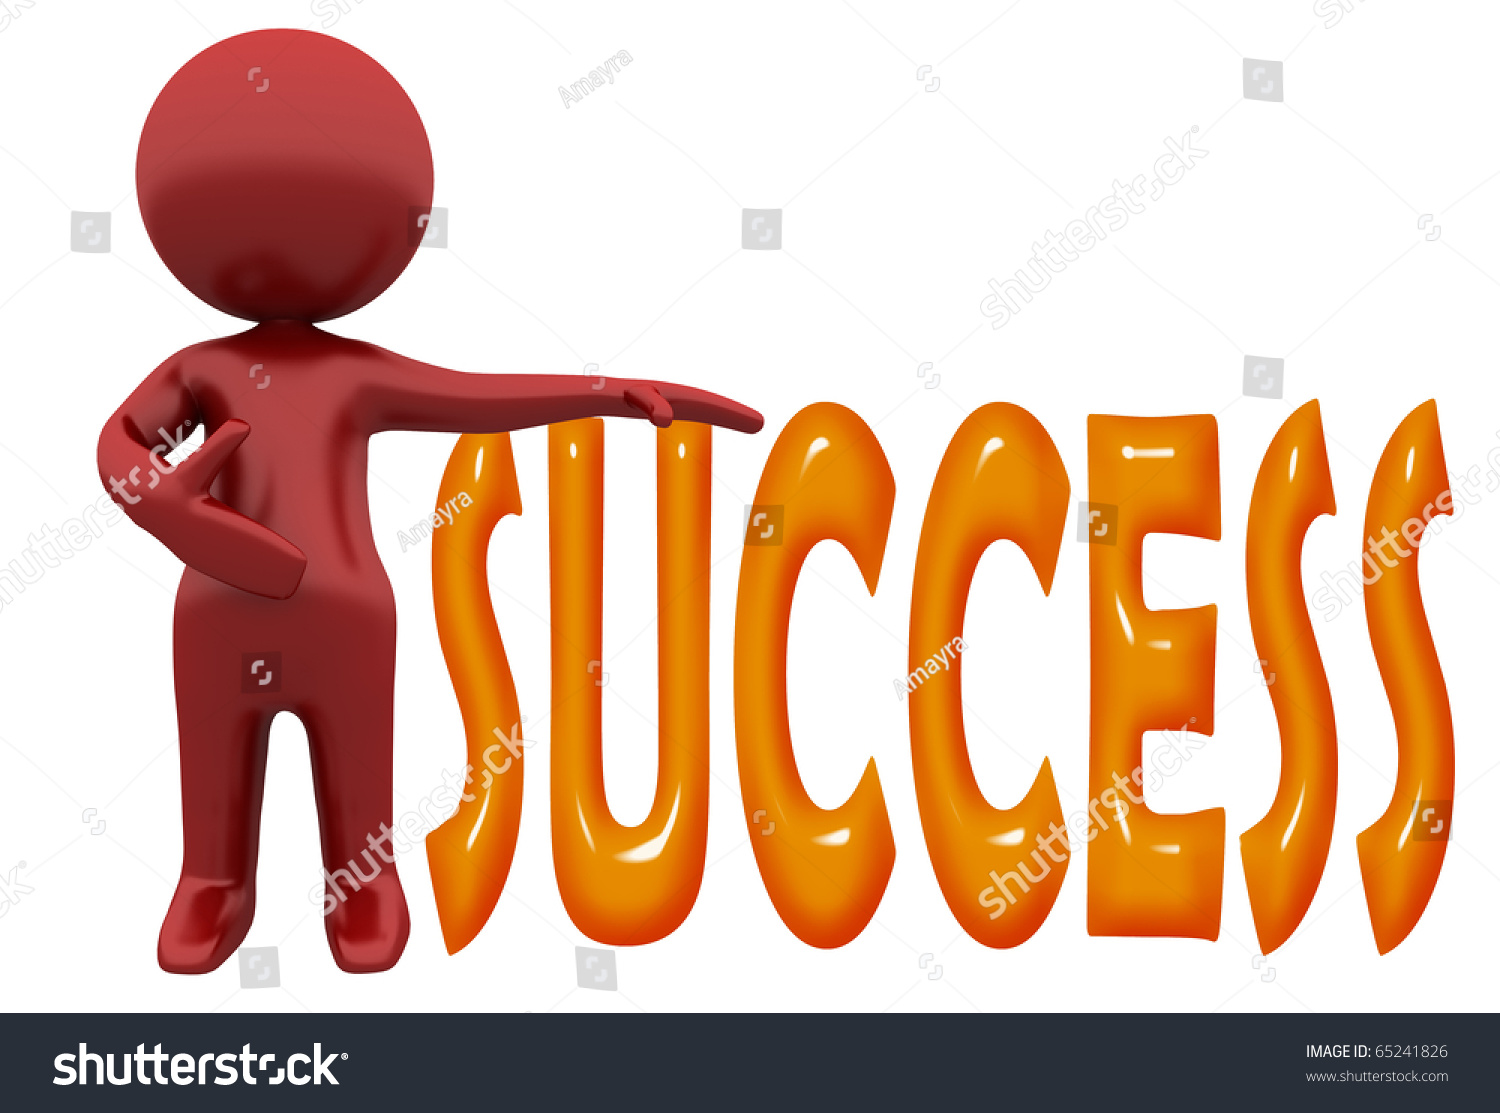 who is a successful person Why going to a good school doesn't equal success when i was a child, my poor dad wanted me to get a good education you need to go to a good school so that you can have a good job and be successful in life, he said.